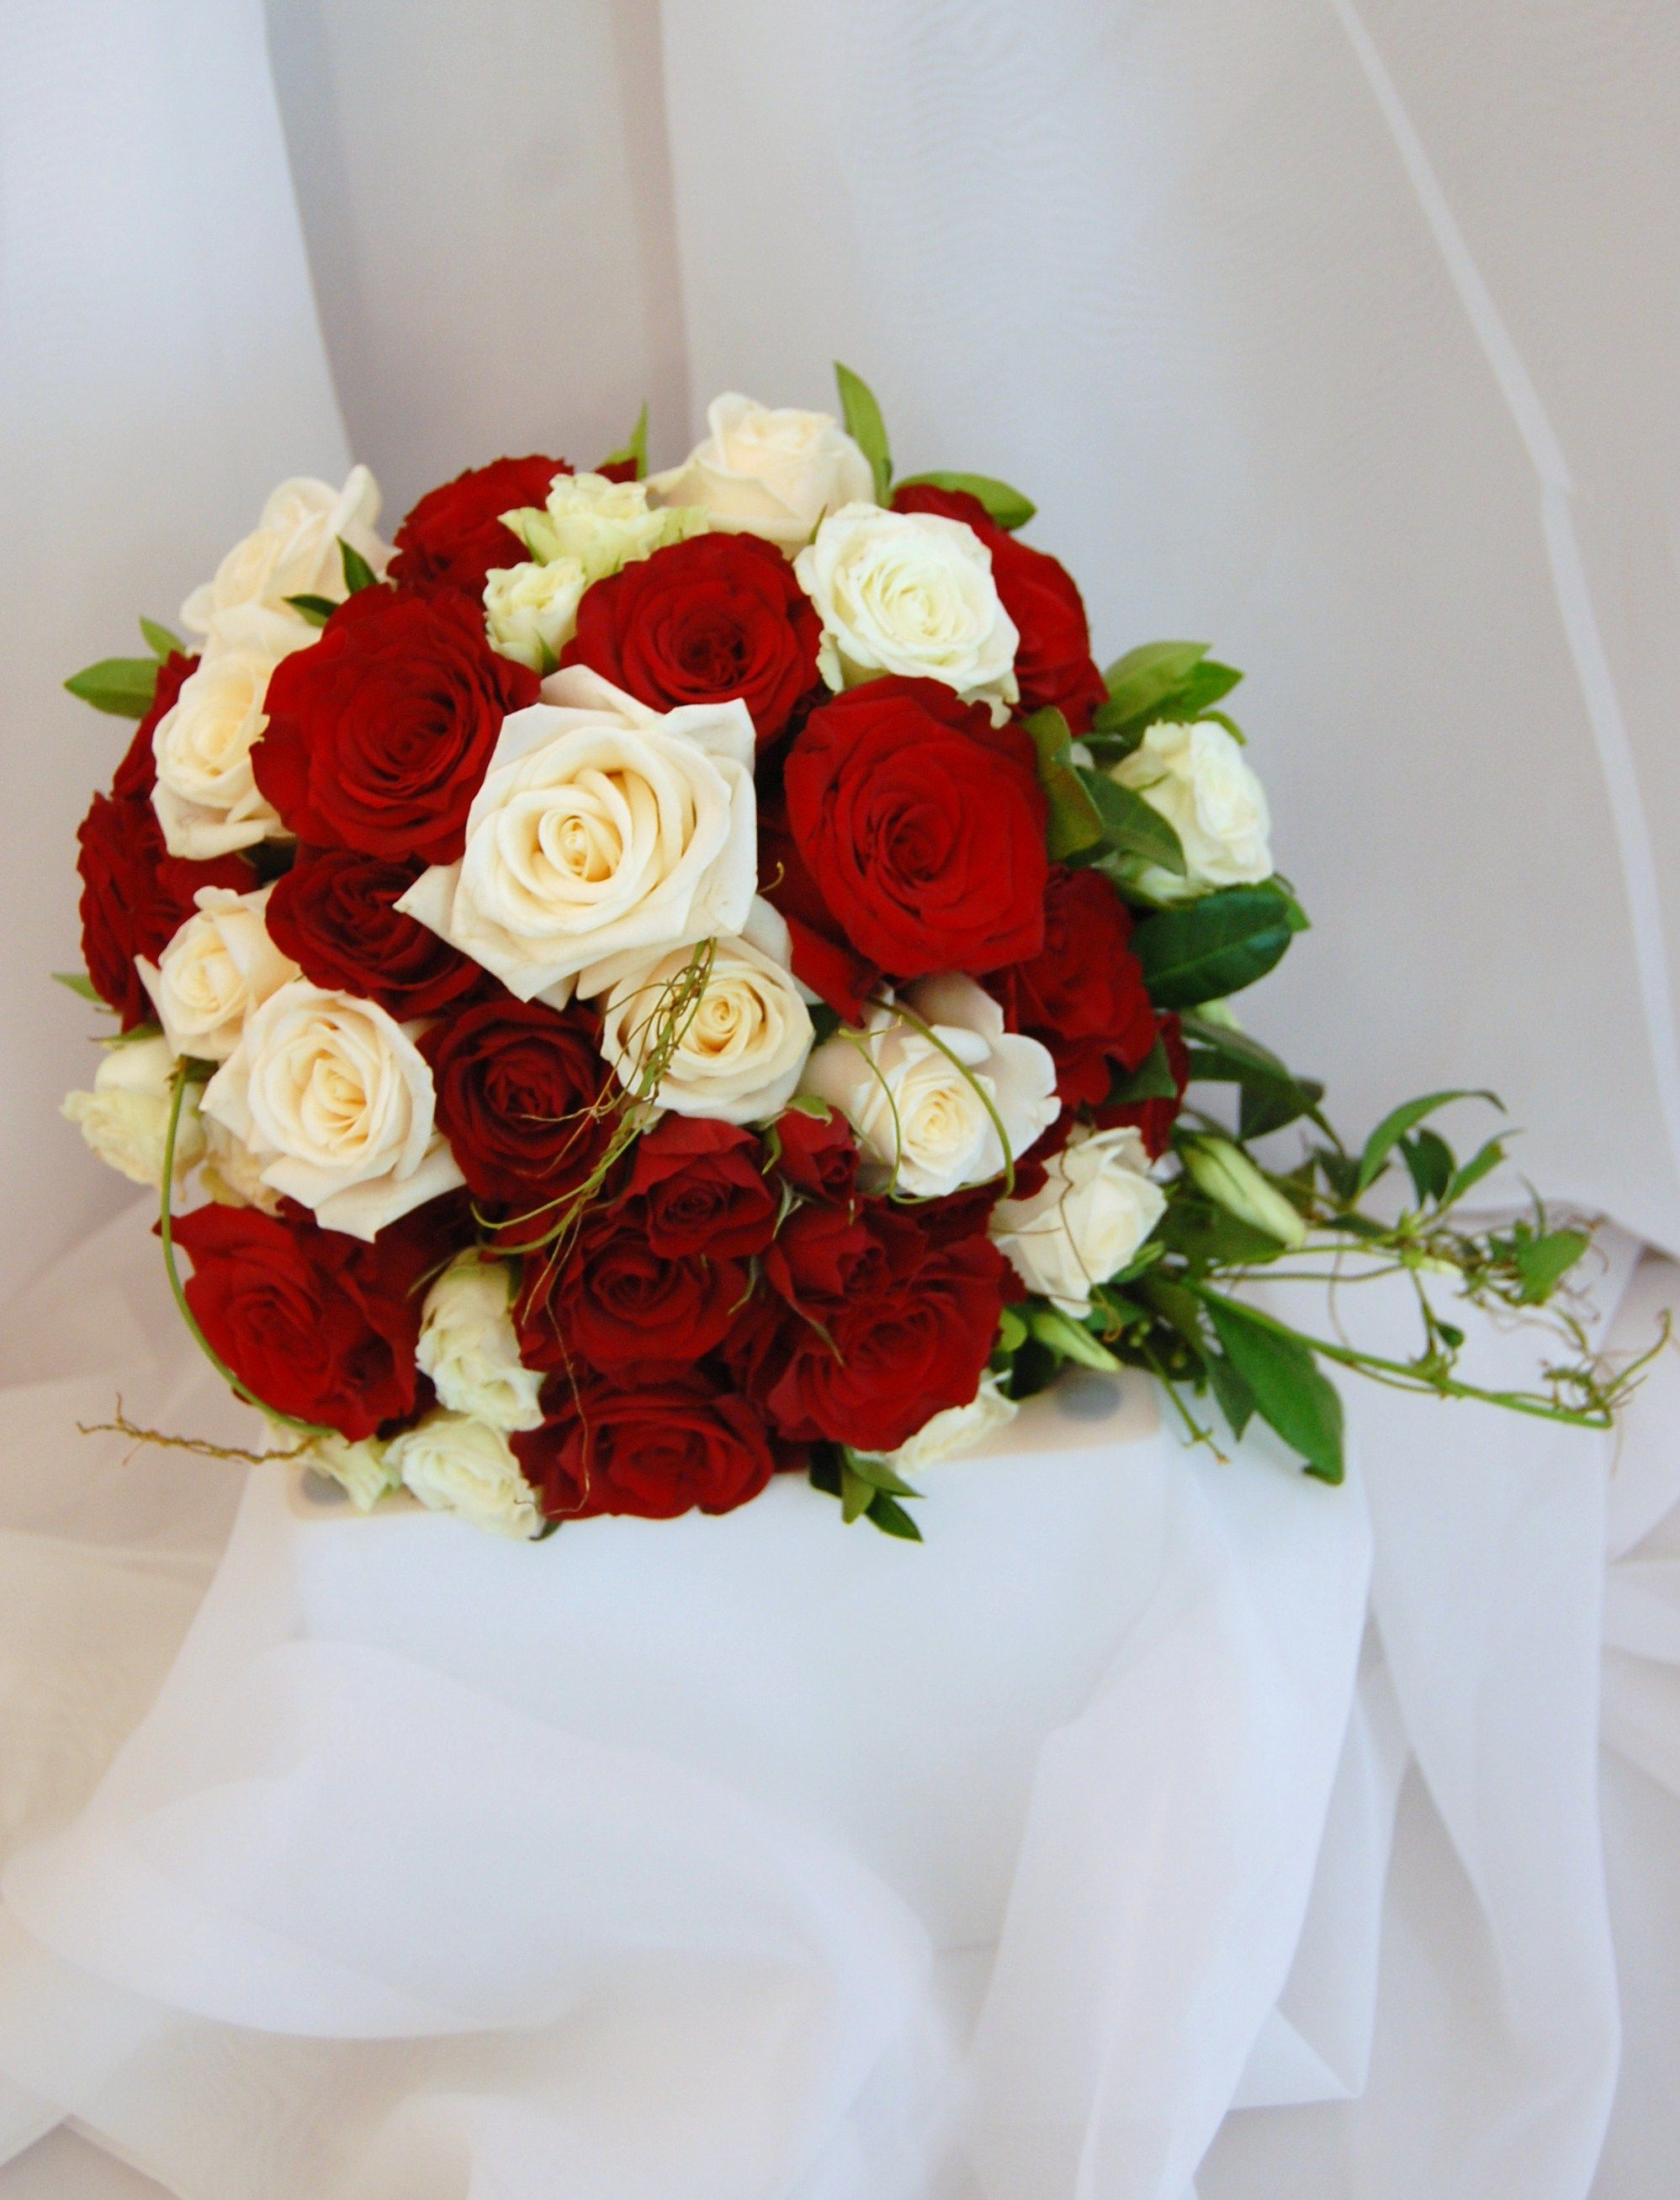 Rose Bridal Bouquets Back Next Picture 1 Of 3 Bouquet Red And White Roses